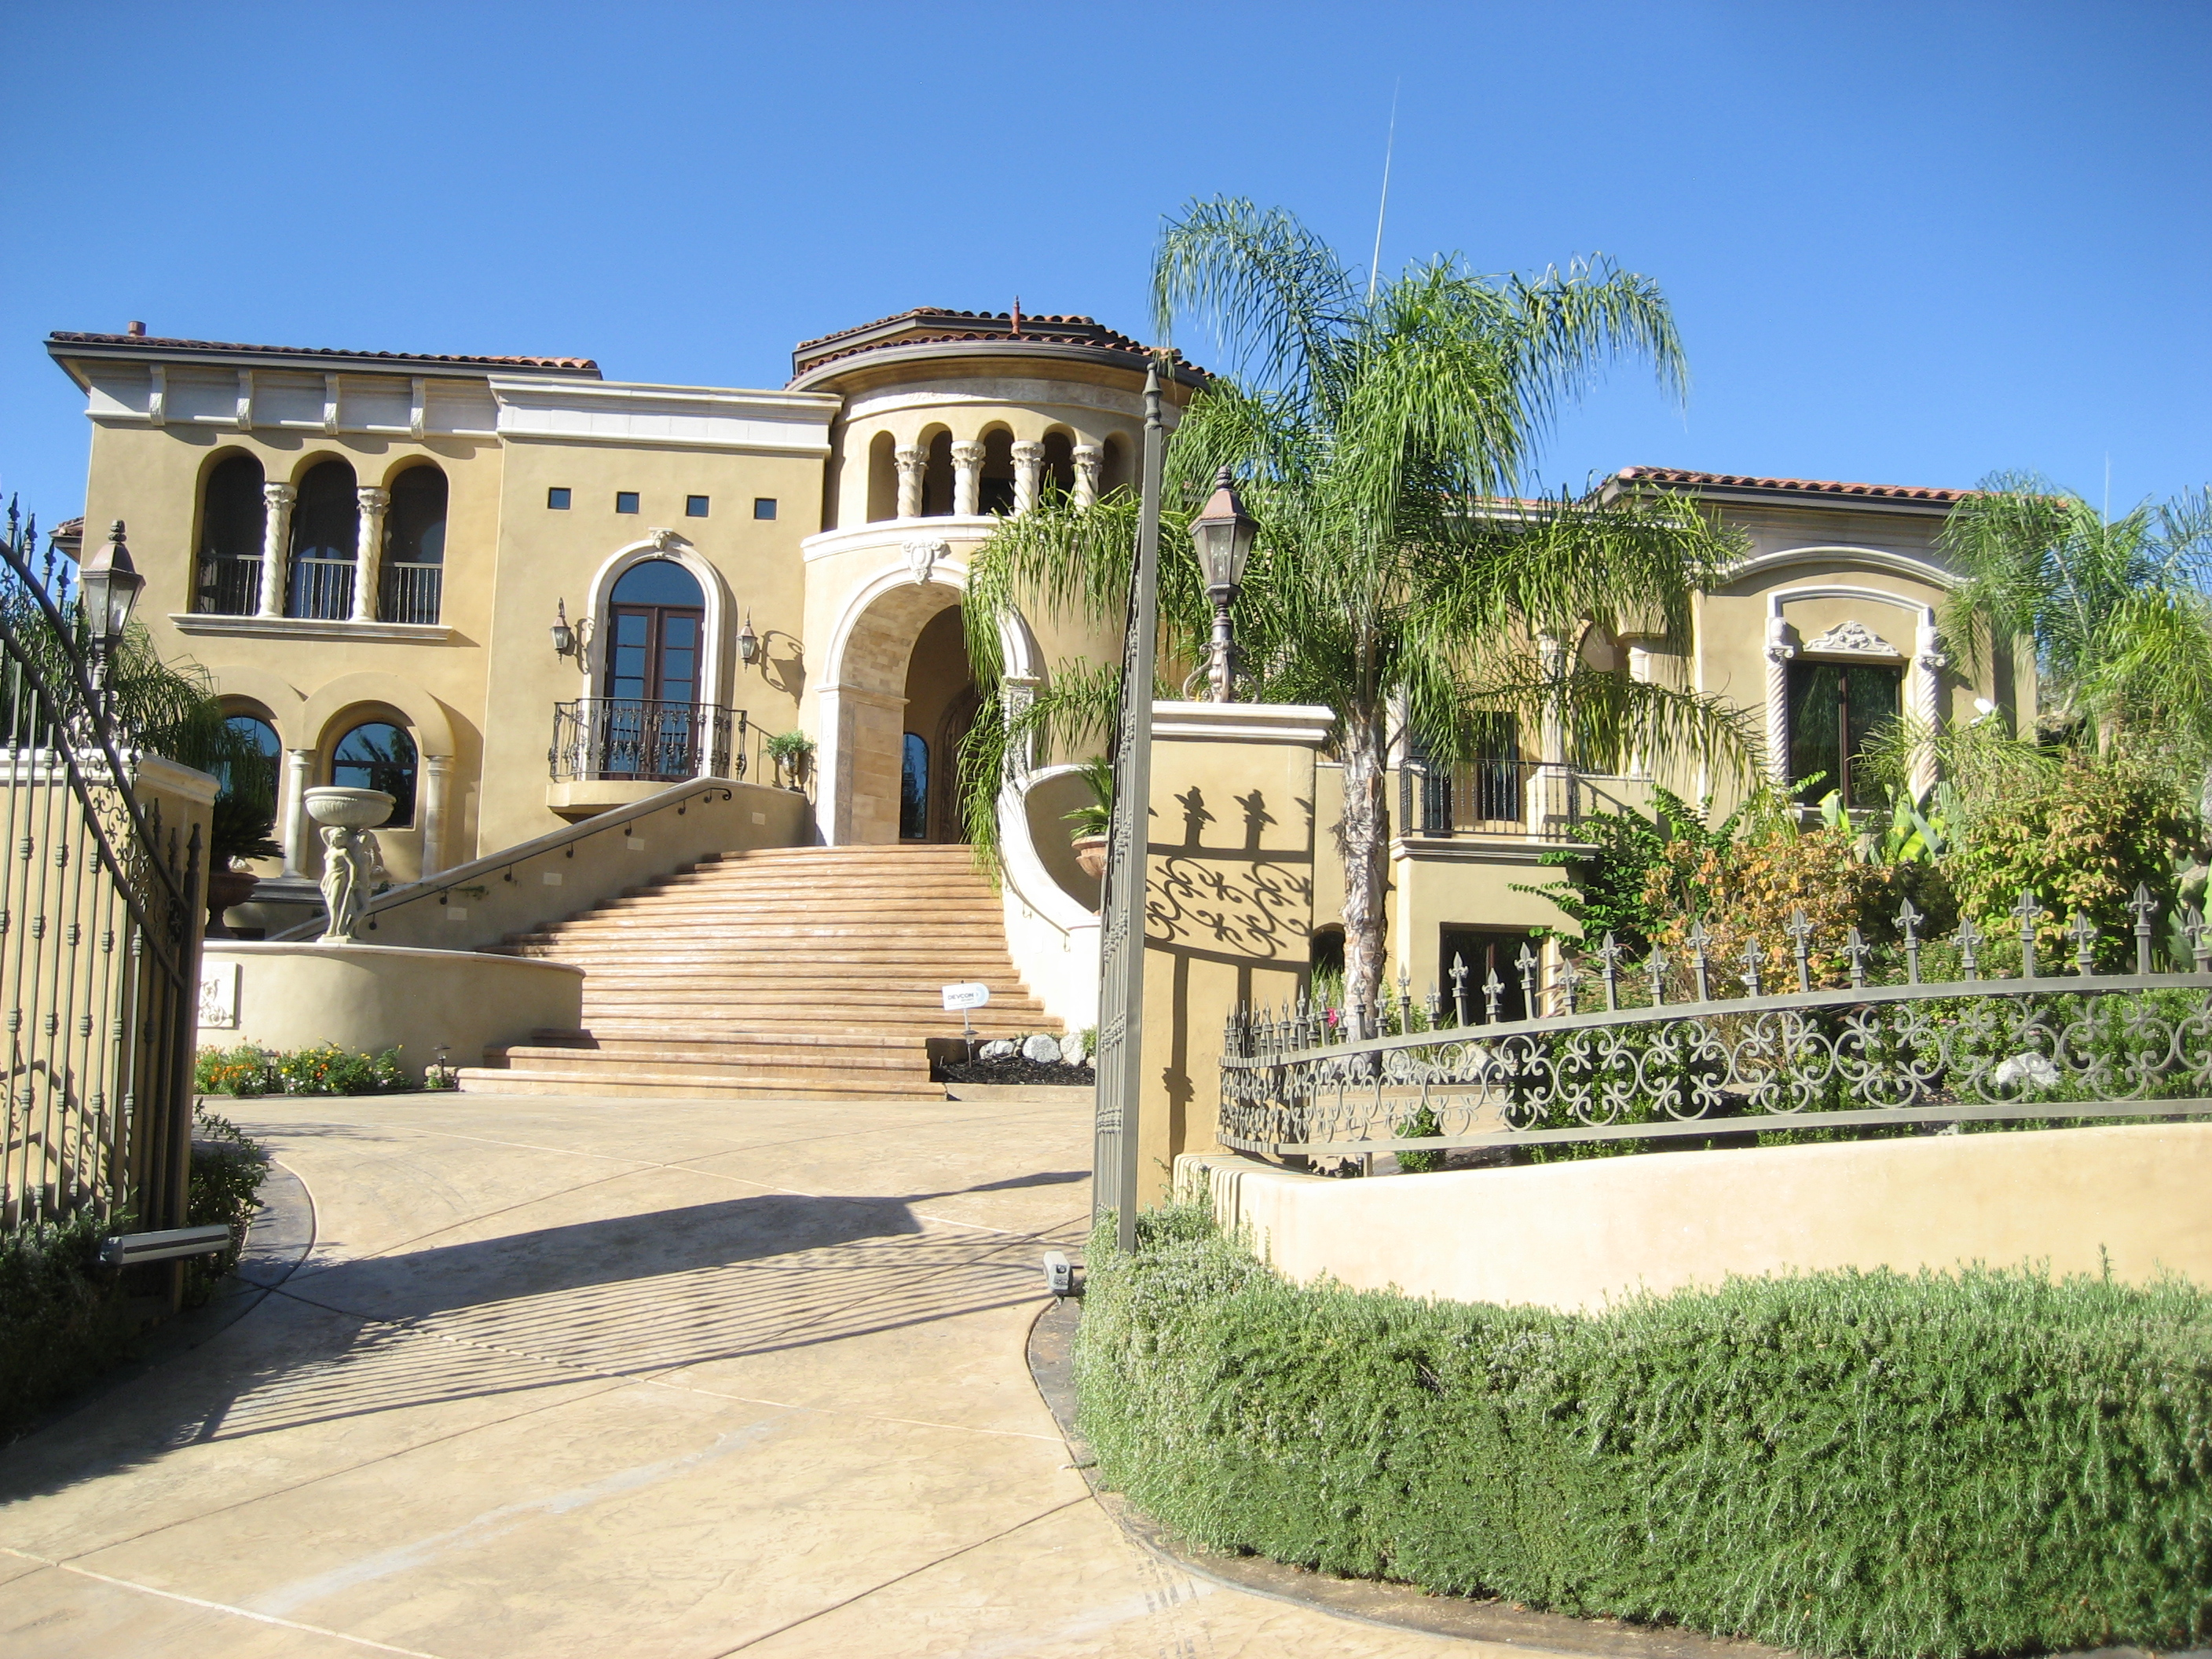 Miraculous Los Lagos In Granite Bay Could Be Your Next Home Interior Design Ideas Clesiryabchikinfo